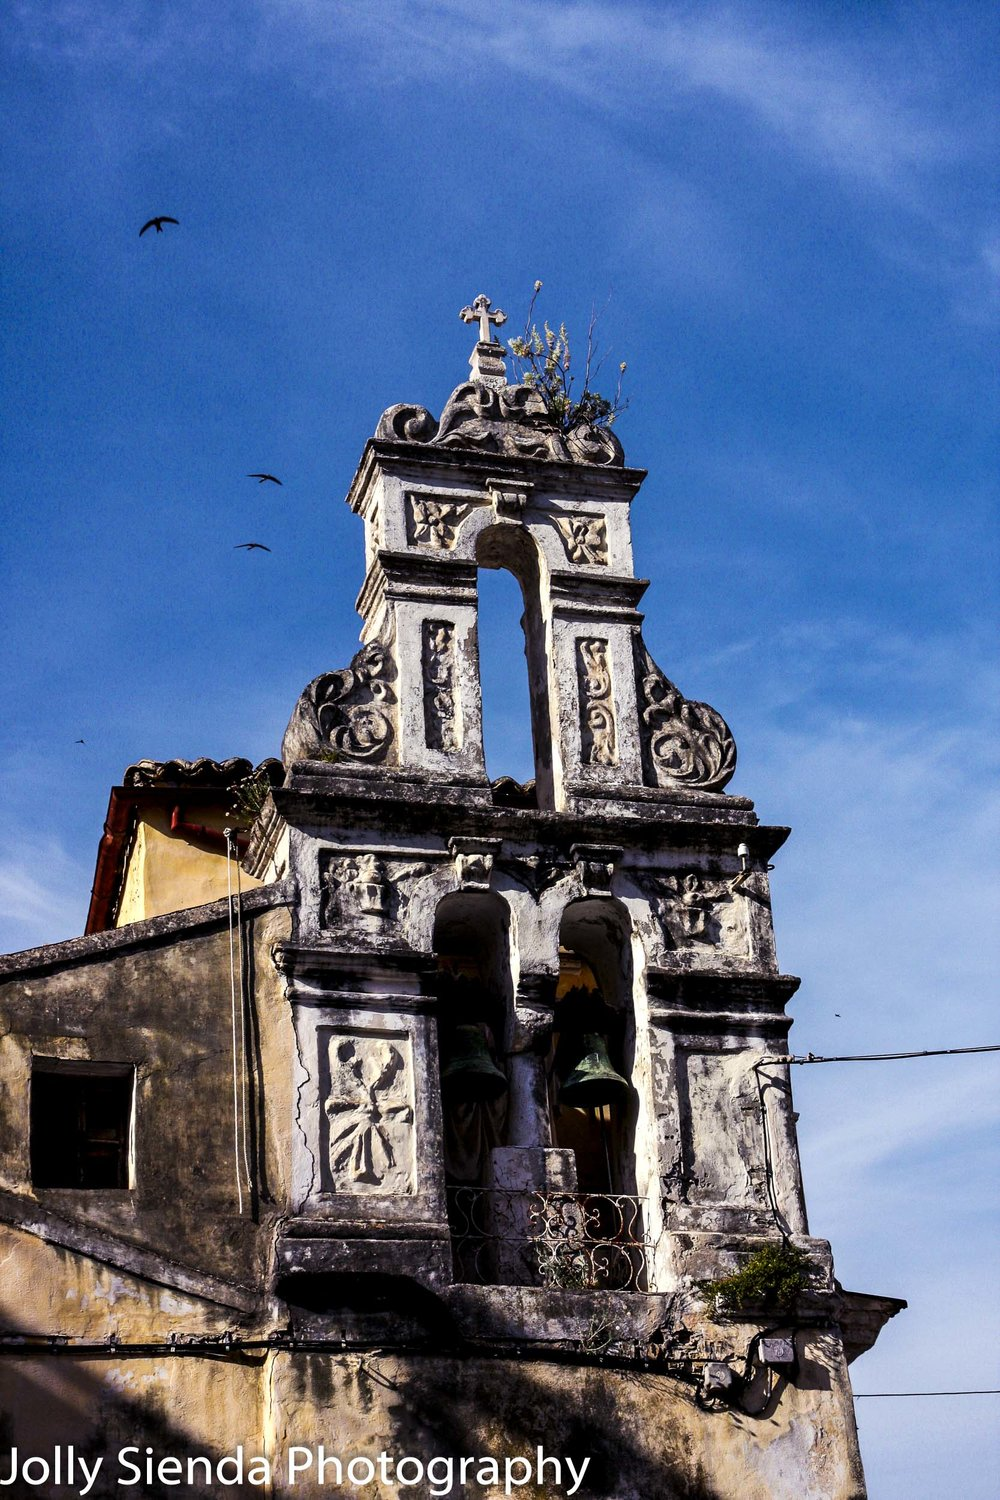 Old, ornate church facade with bronze bells and seagulls